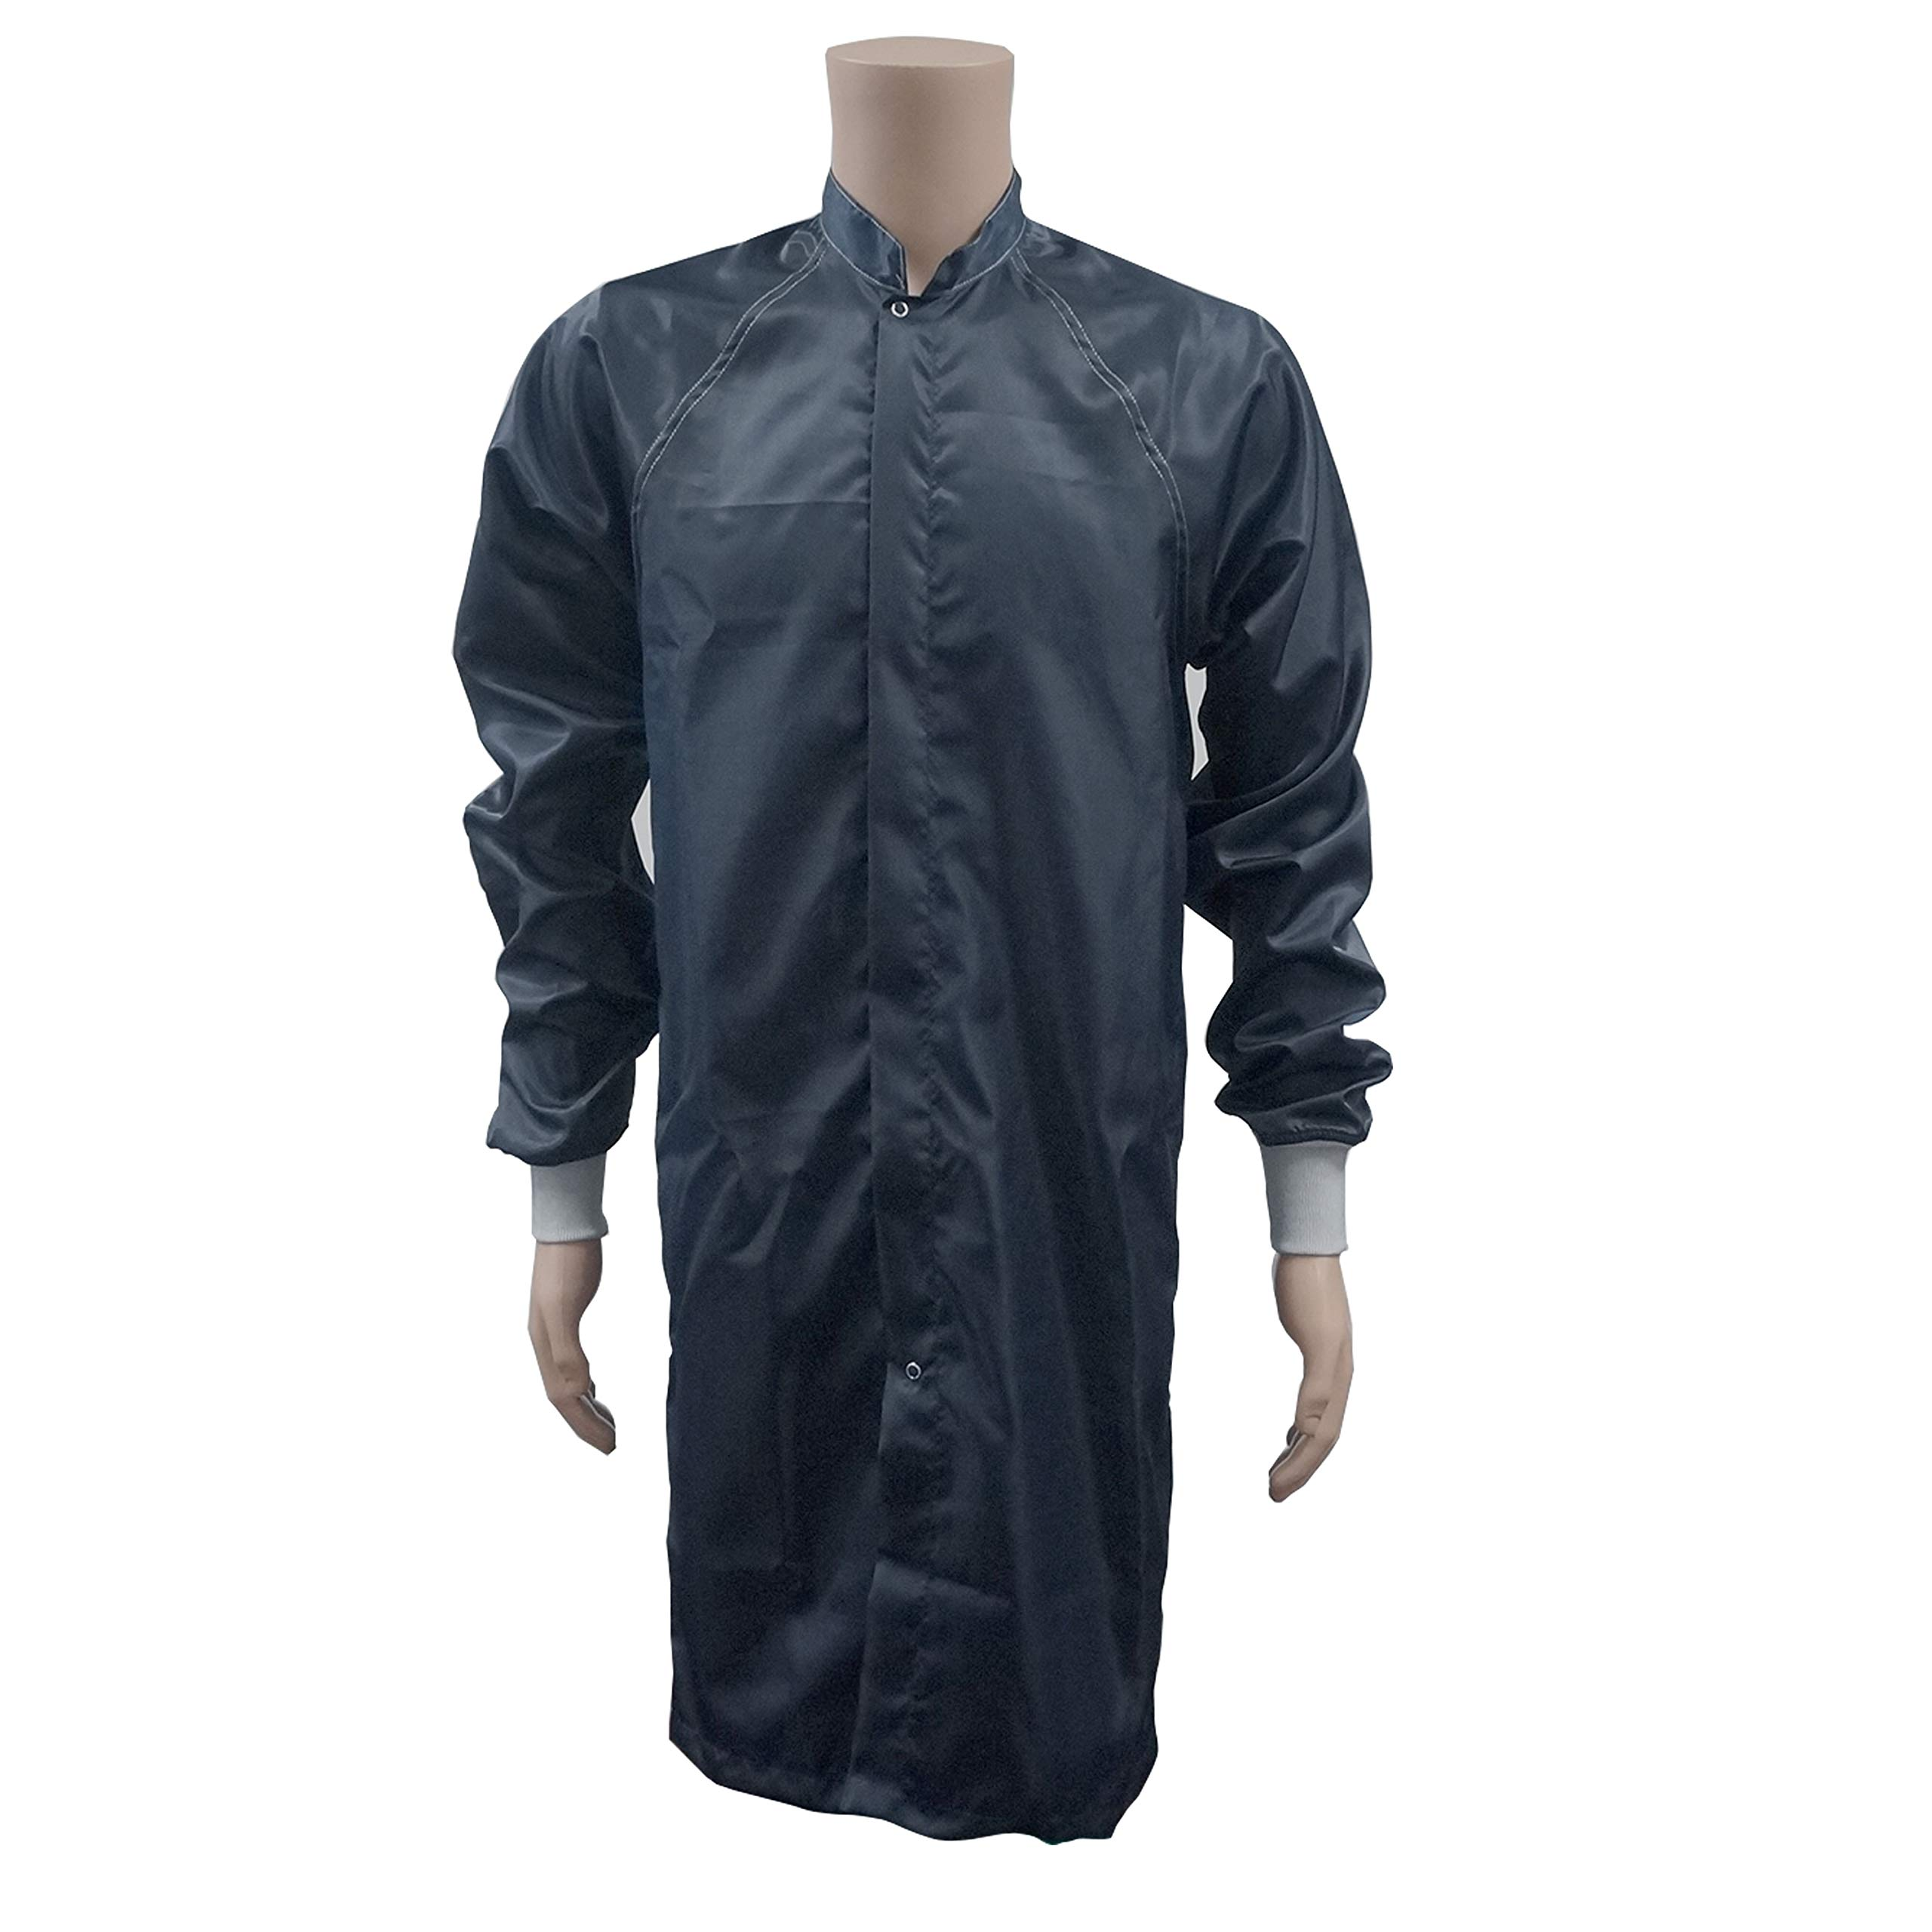 ESD Clean Room Frocks - Polyester W/Knit Cuffs, Meet Up To Class 100 Clean Room - Navy Blue - Extra Large